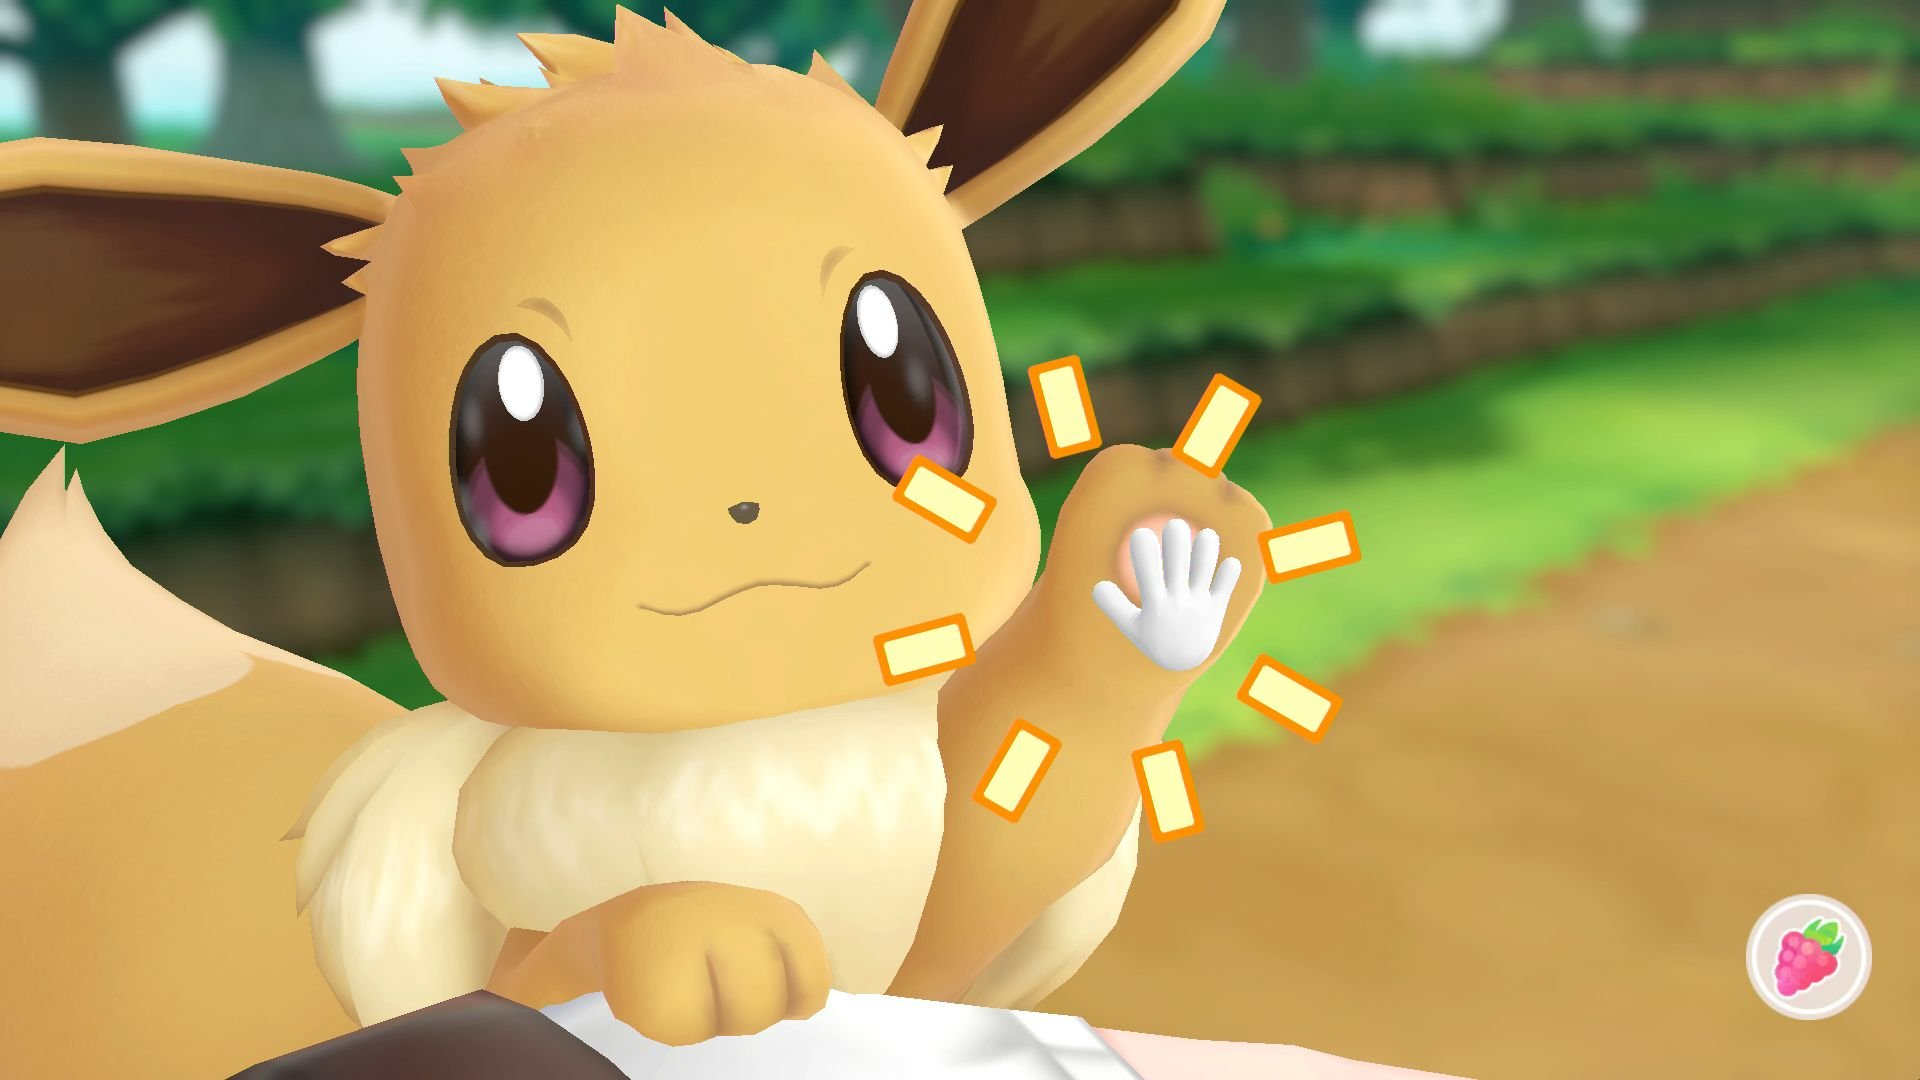 Secret Techniques Exclusive Moves And More Revealed In Latest Pokemon Lets Go Pikachu